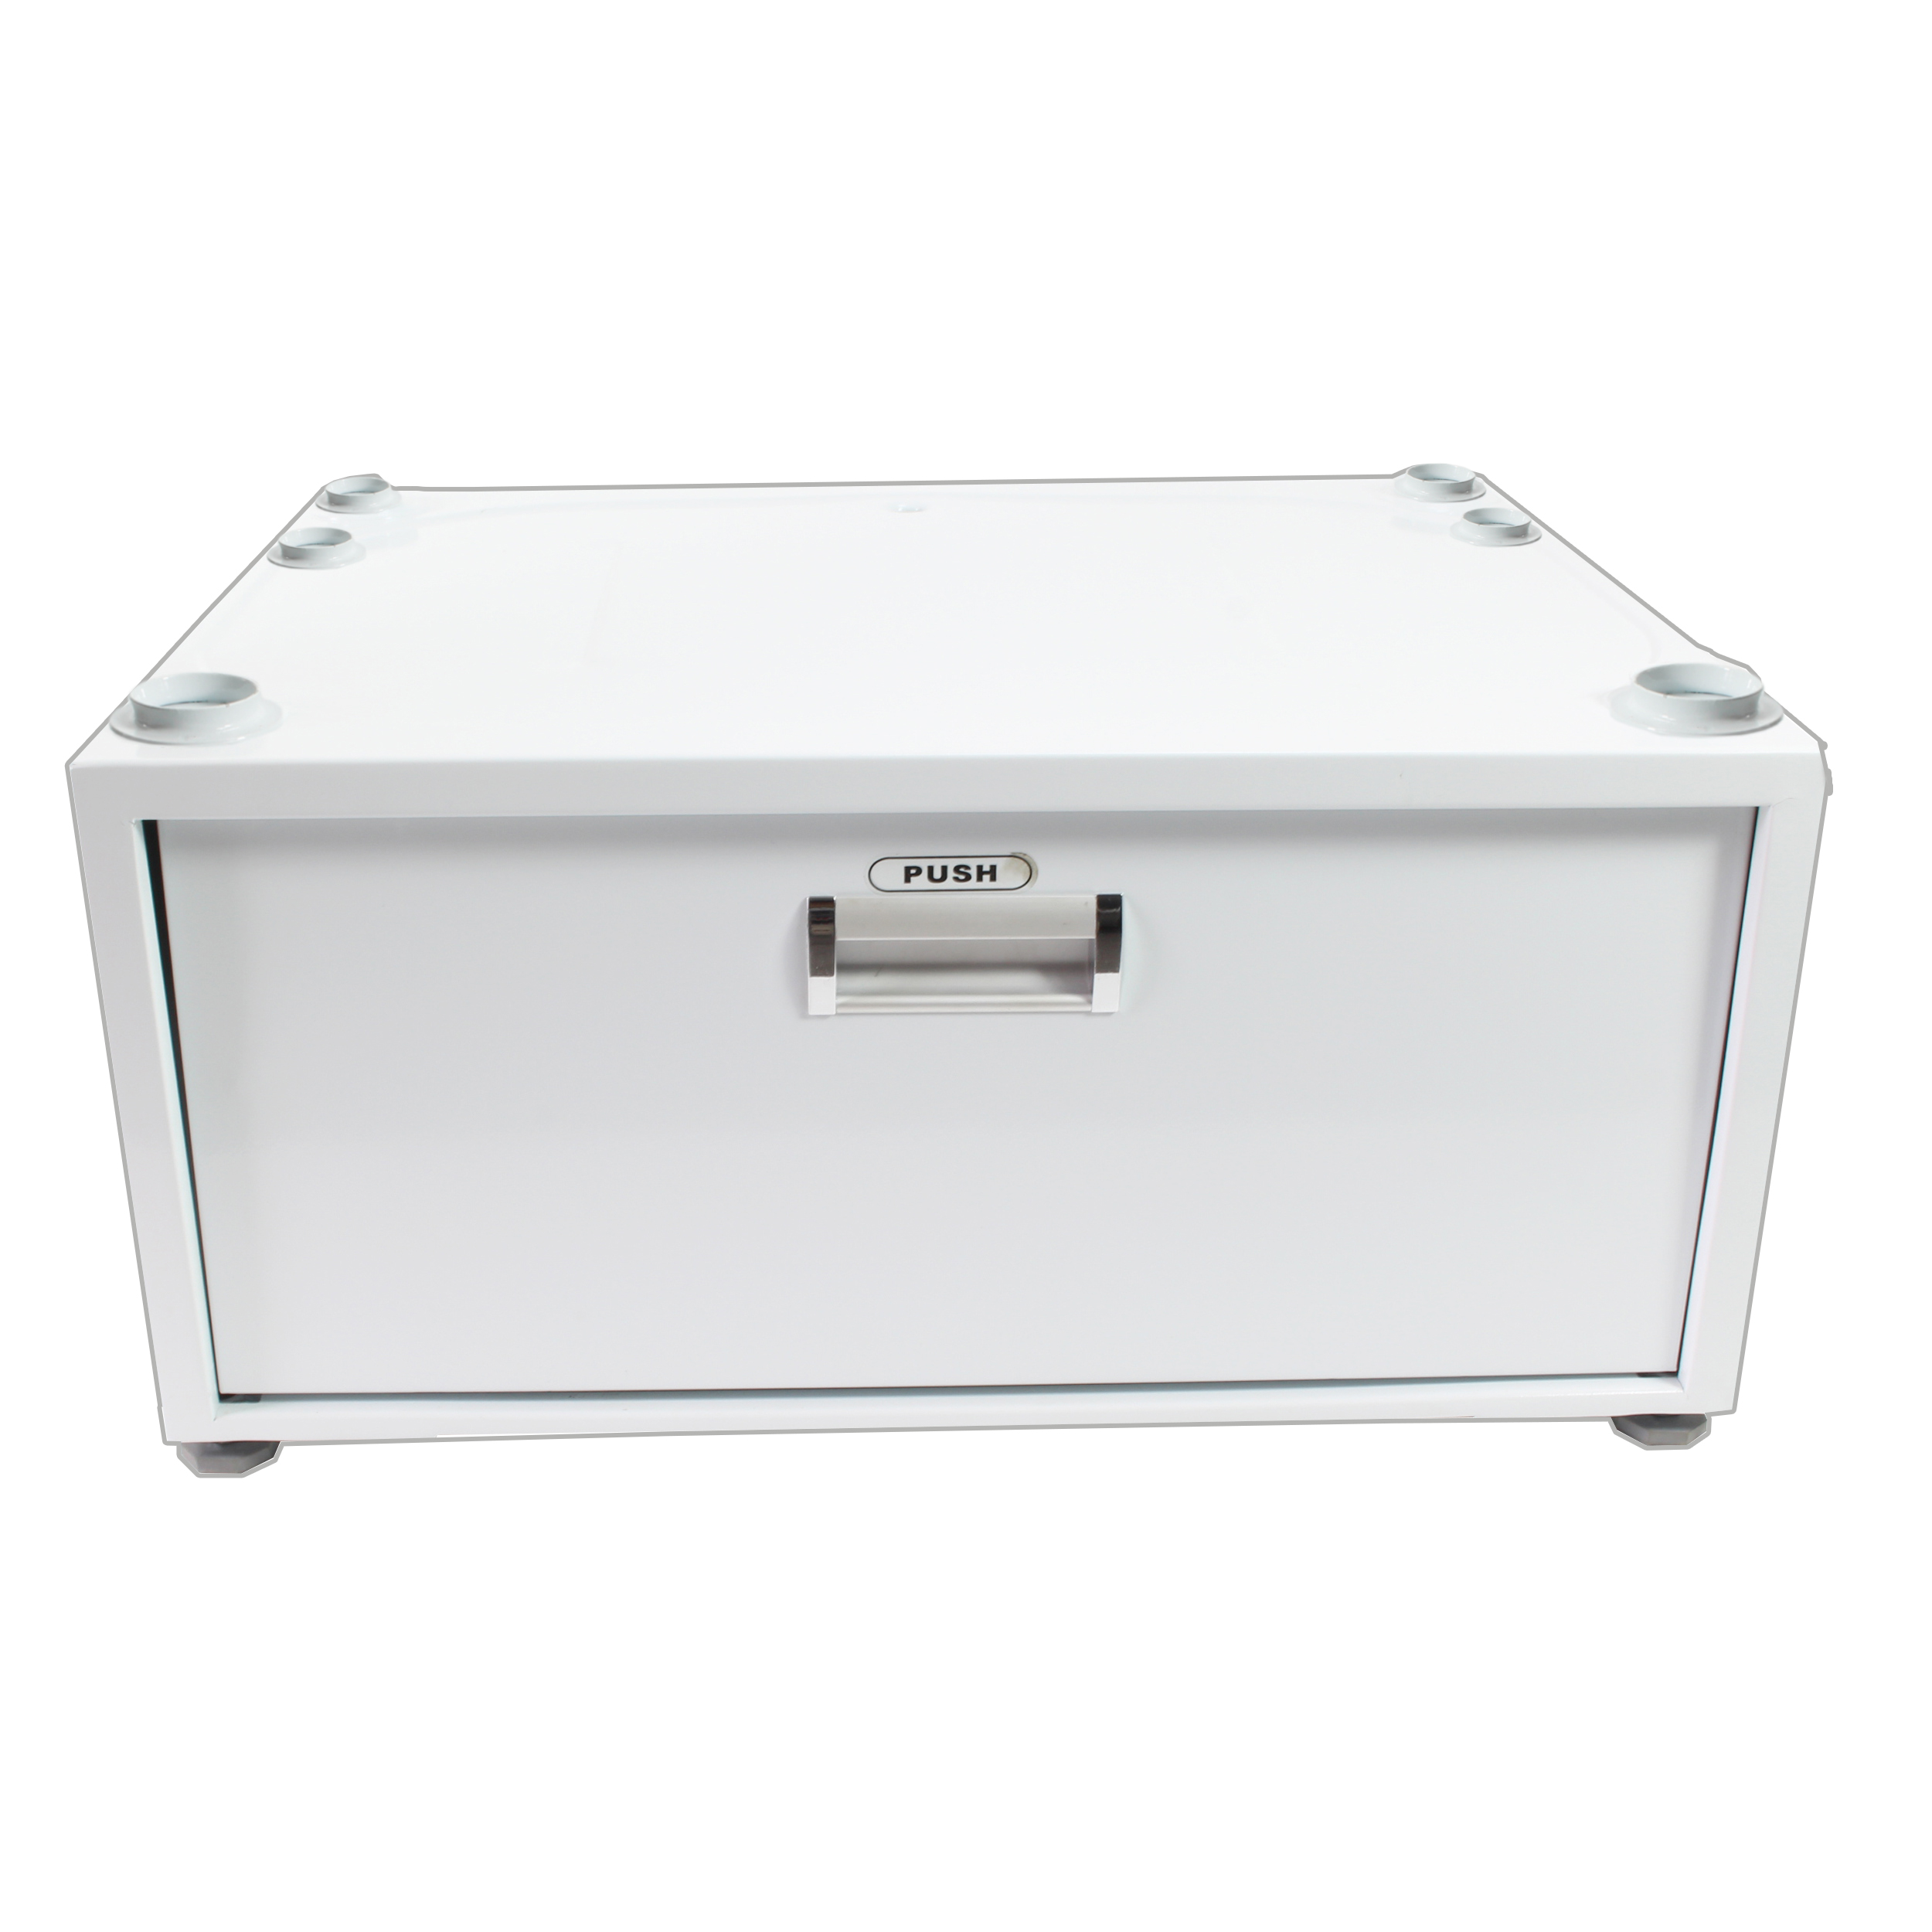 10 in. wide White Laundry Pedestal